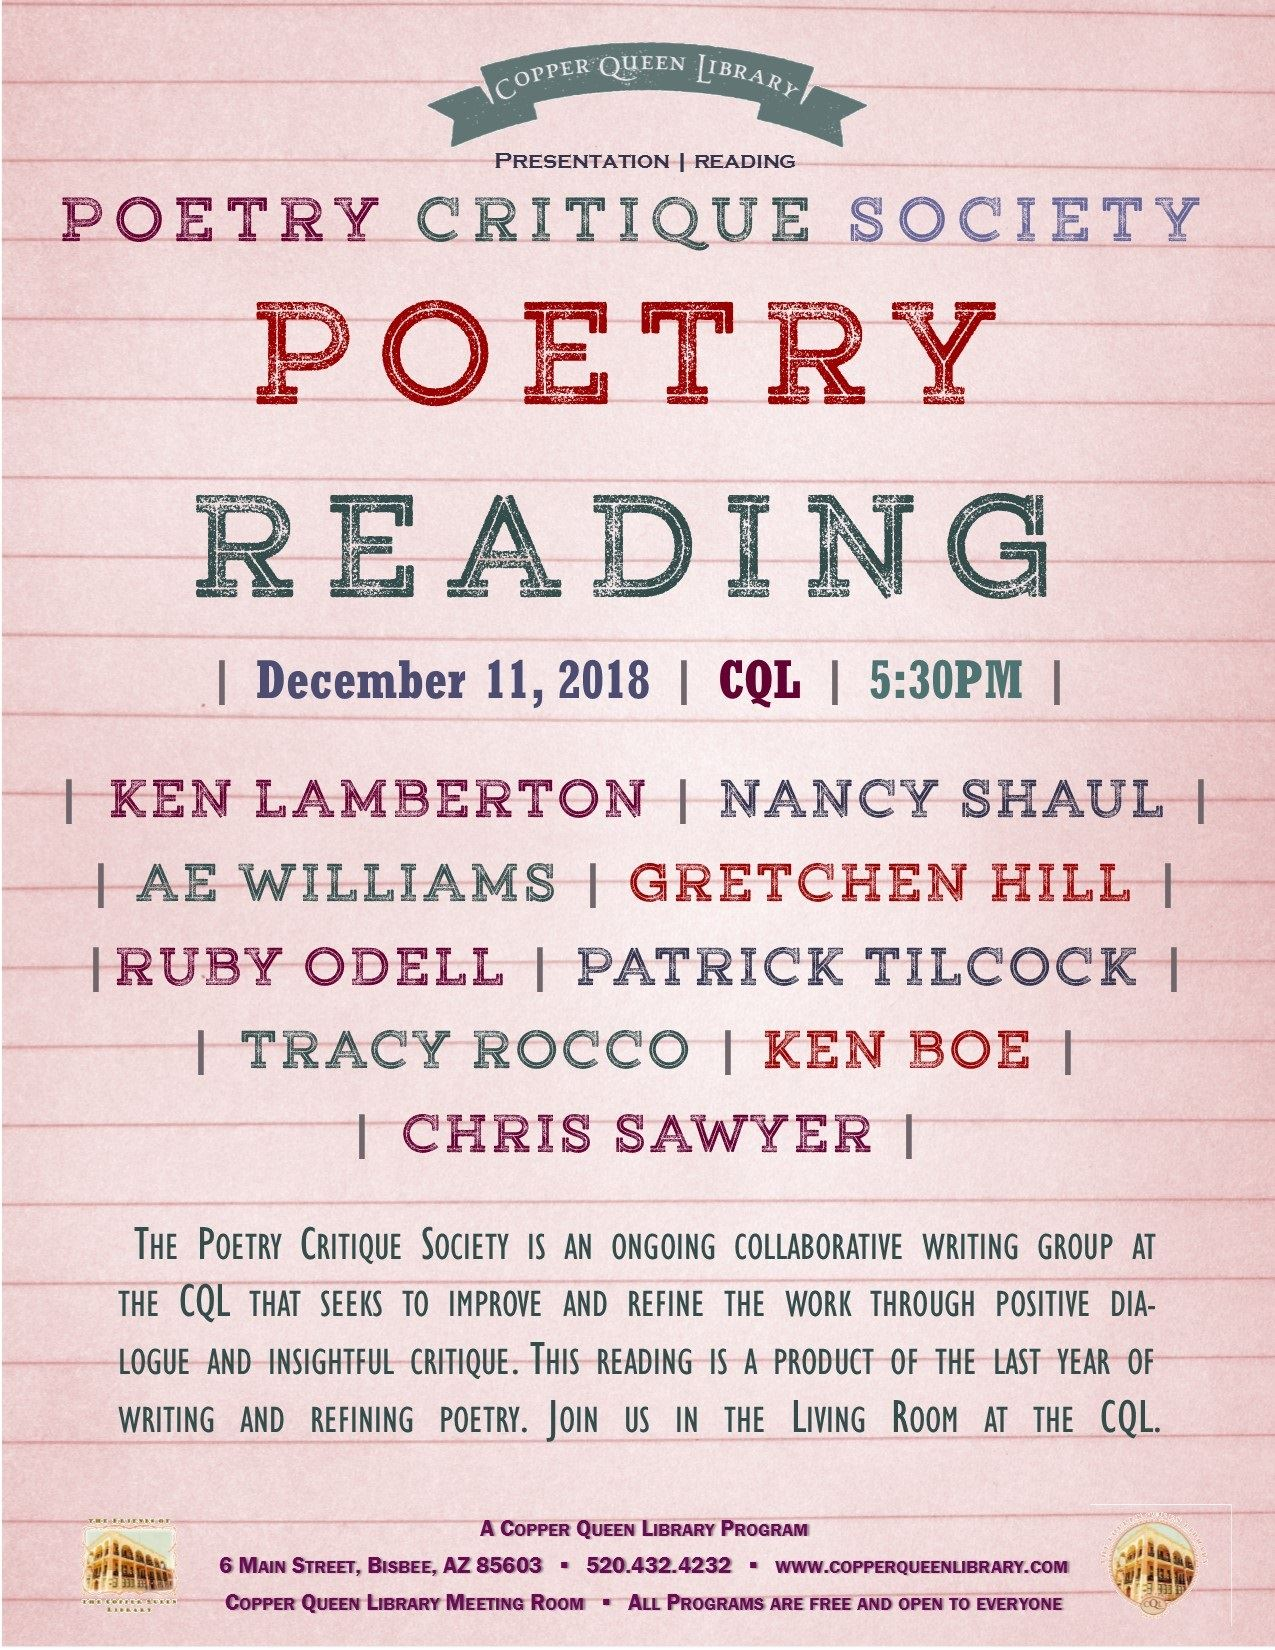 POETRY CRITIQUE SOCIETY READING